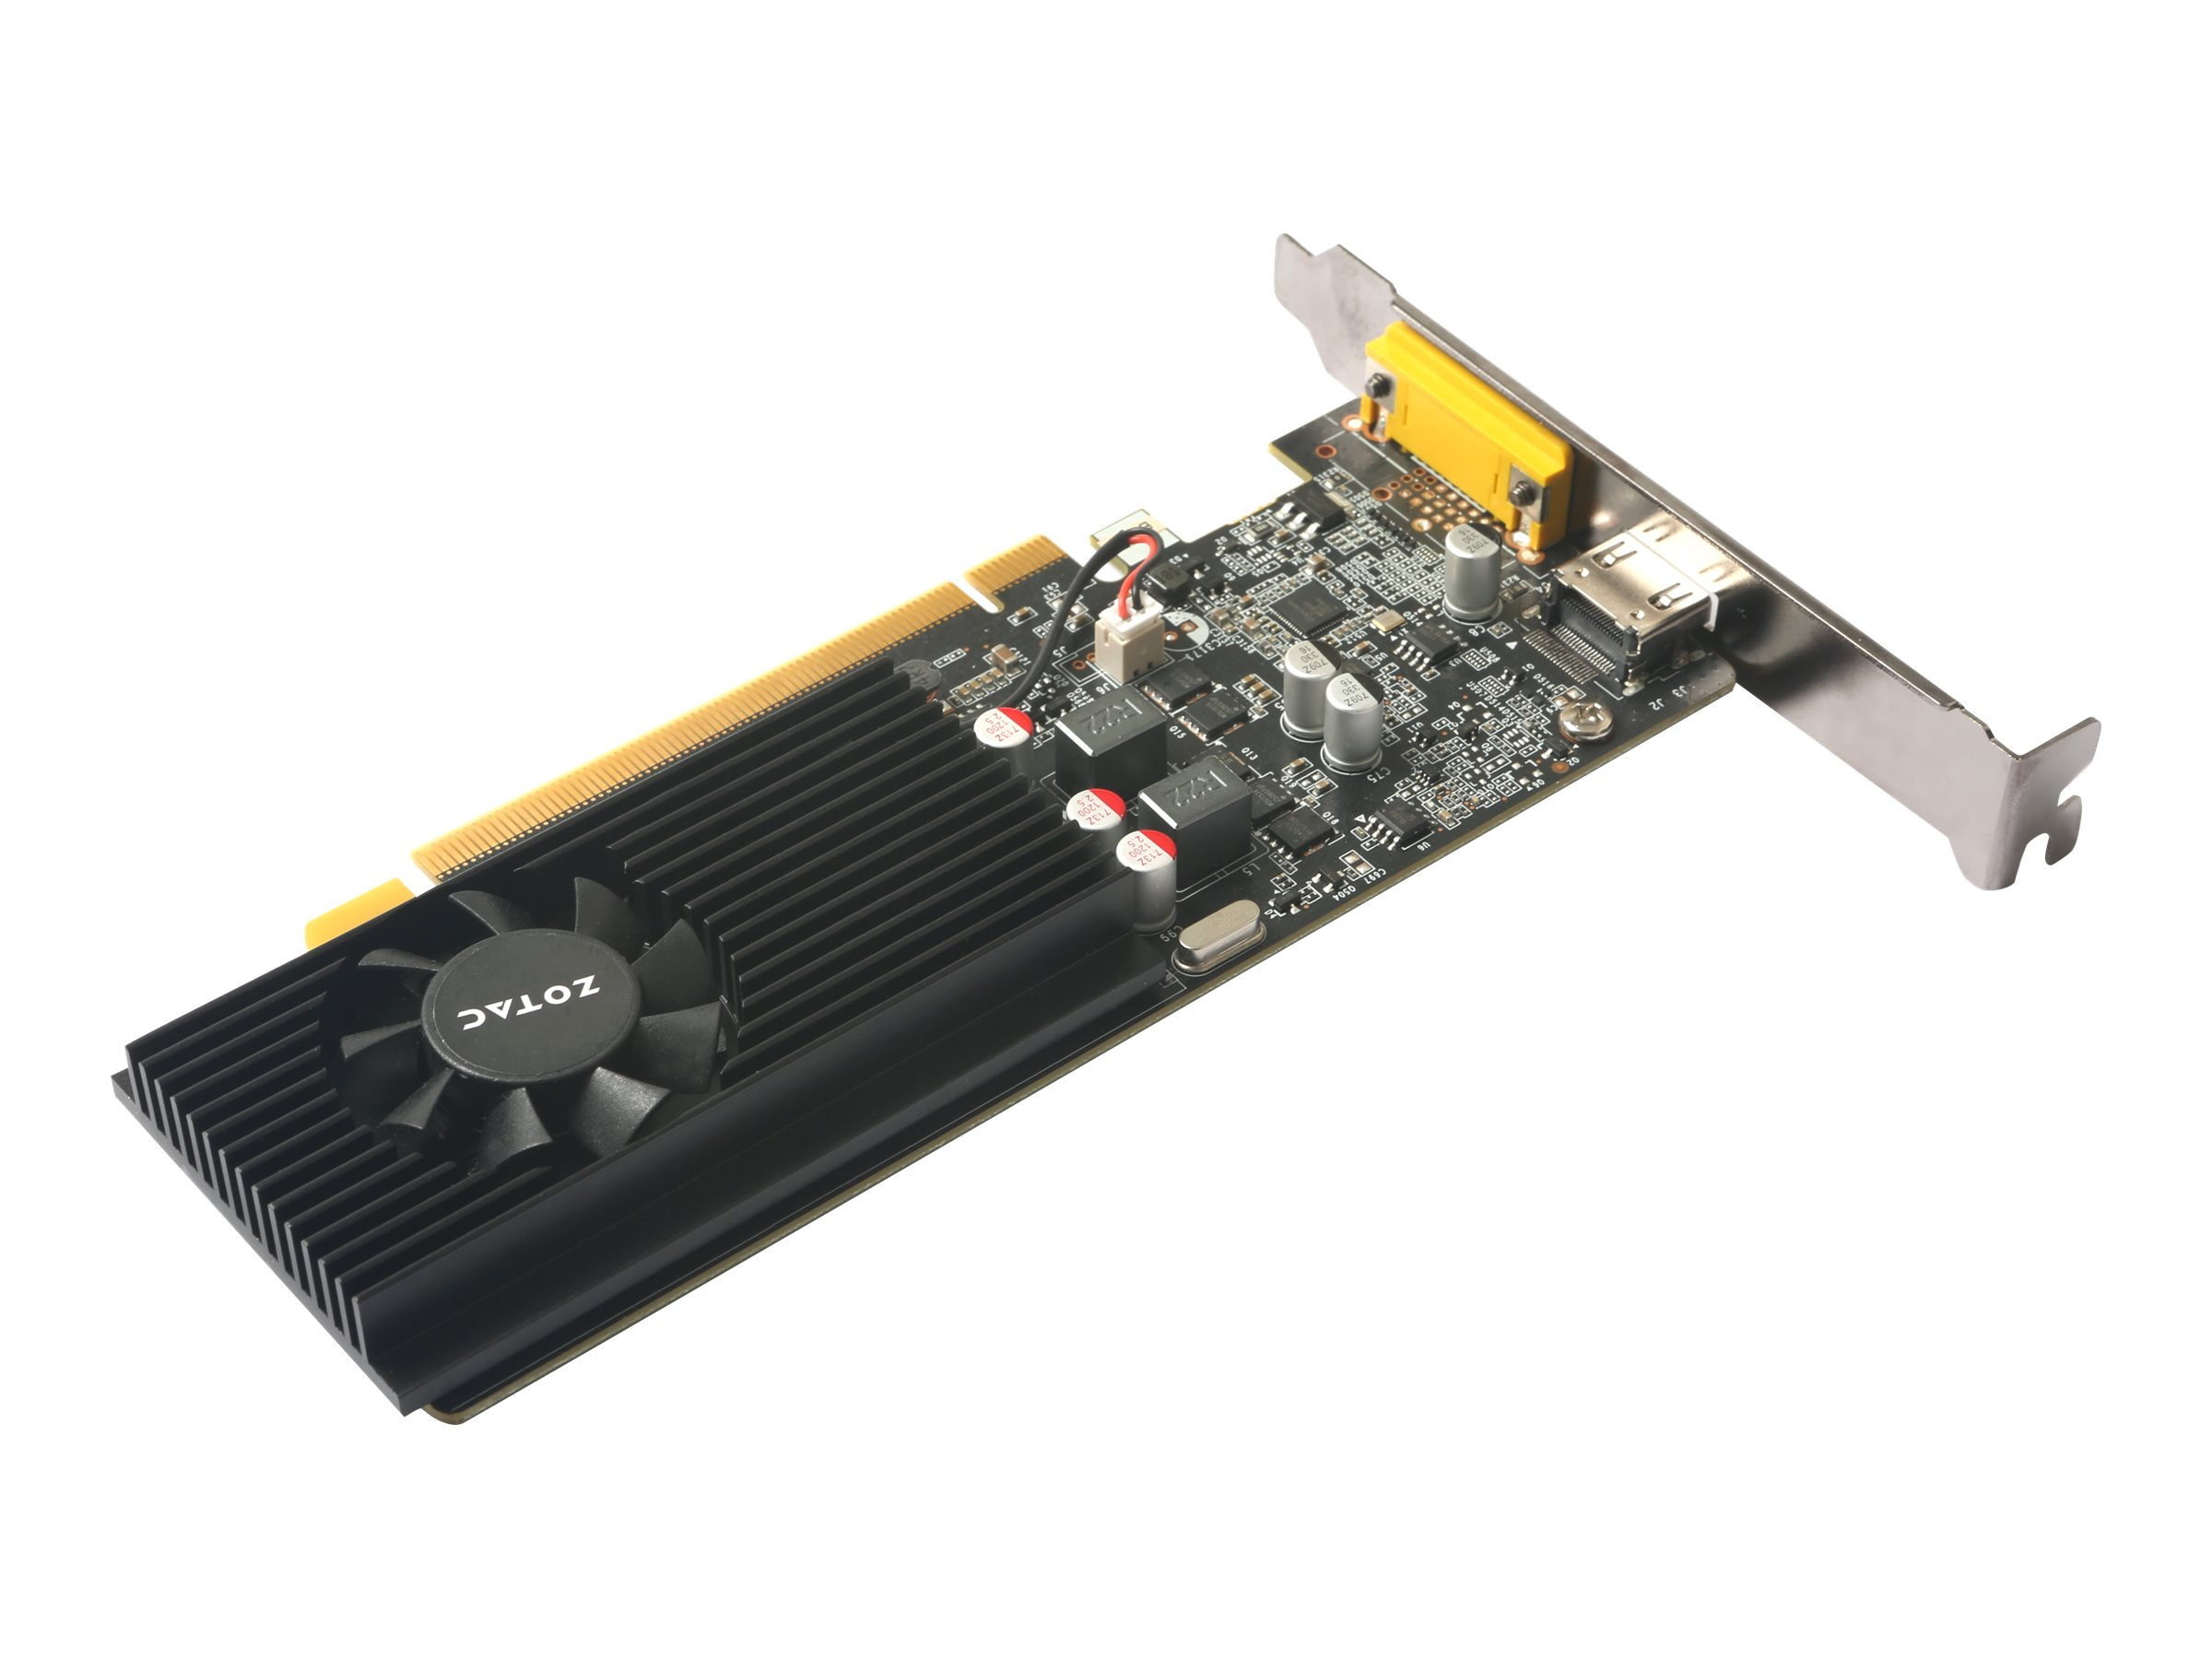 ZOTAC GeForce GT 1030 - Grafikkarten - GF GT 1030 - 2 GB GDDR5 - PCIe 3.0 x16 Low-Profile - HDMI, VGA